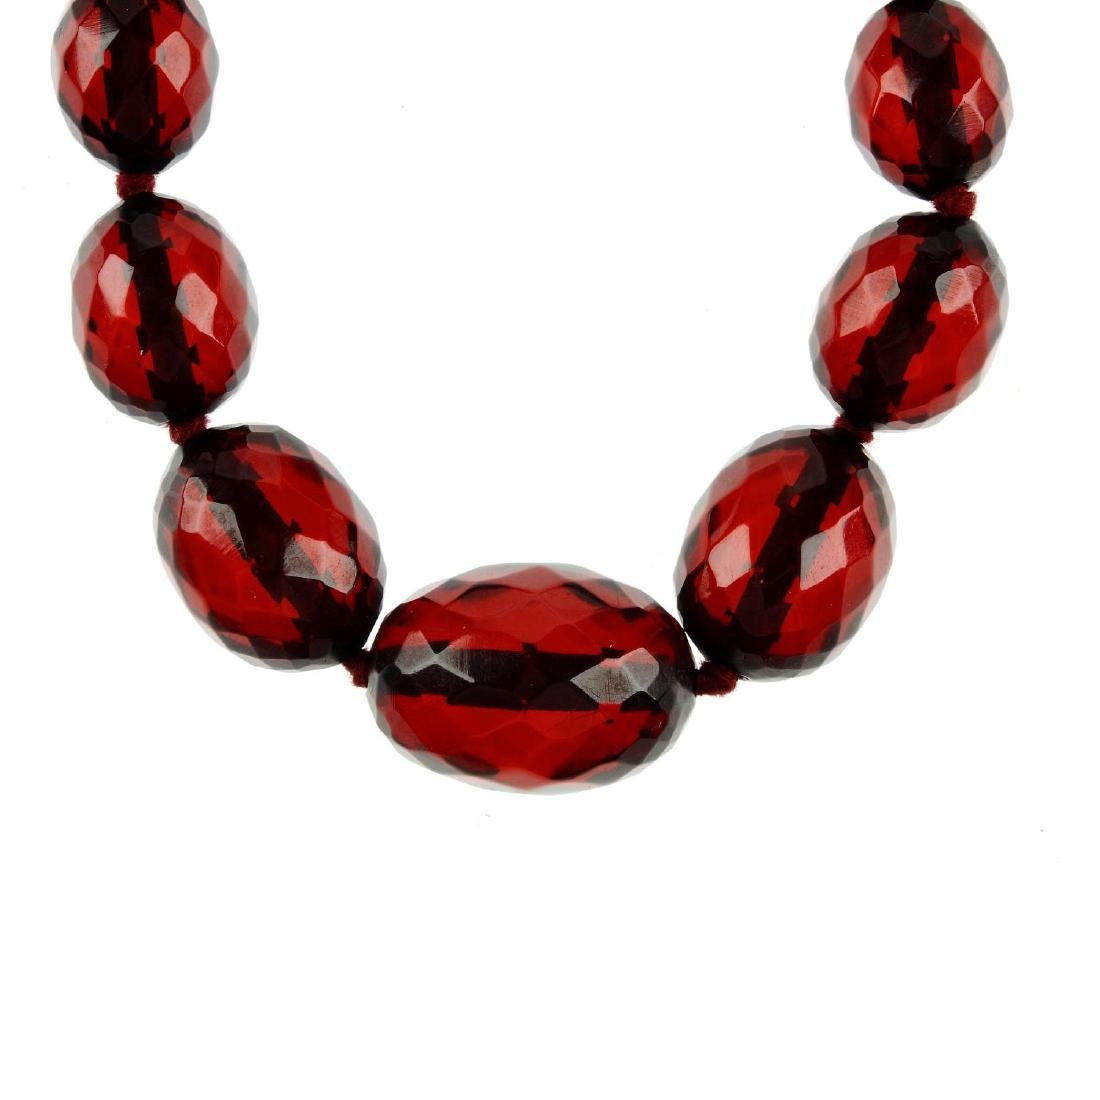 A bakelite necklace. Designed as graduated faceted